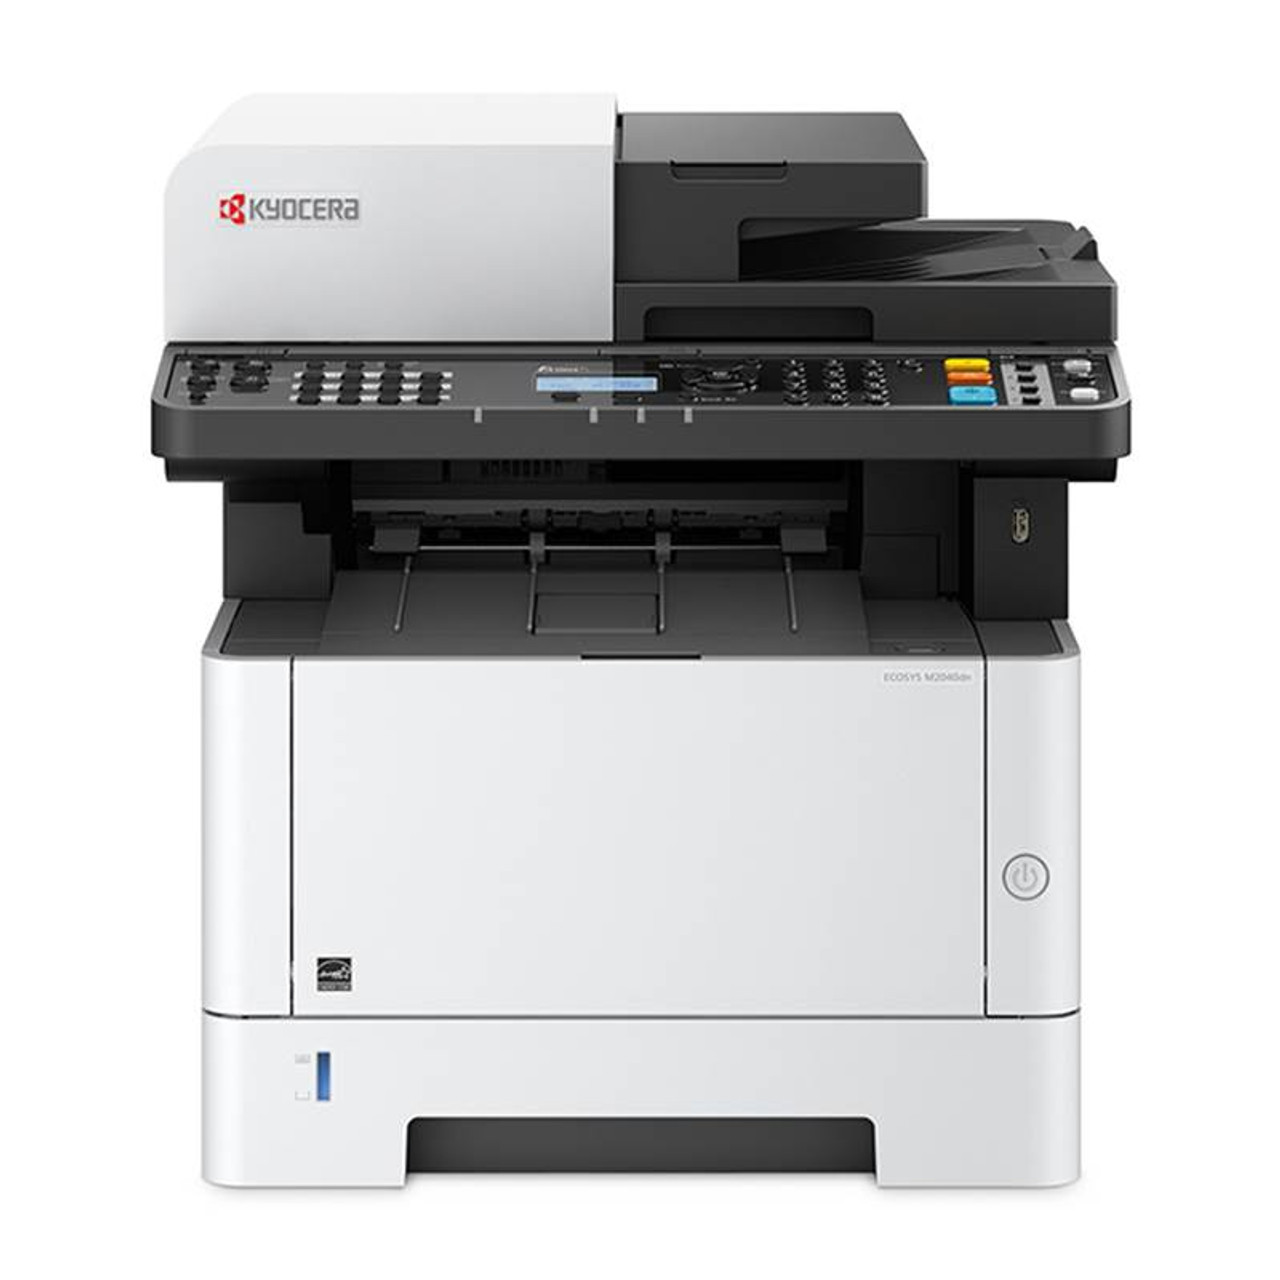 Image for Kyocera ECOSYS M2040dn A4 Monochrome Laser Printer CX Computer Superstore